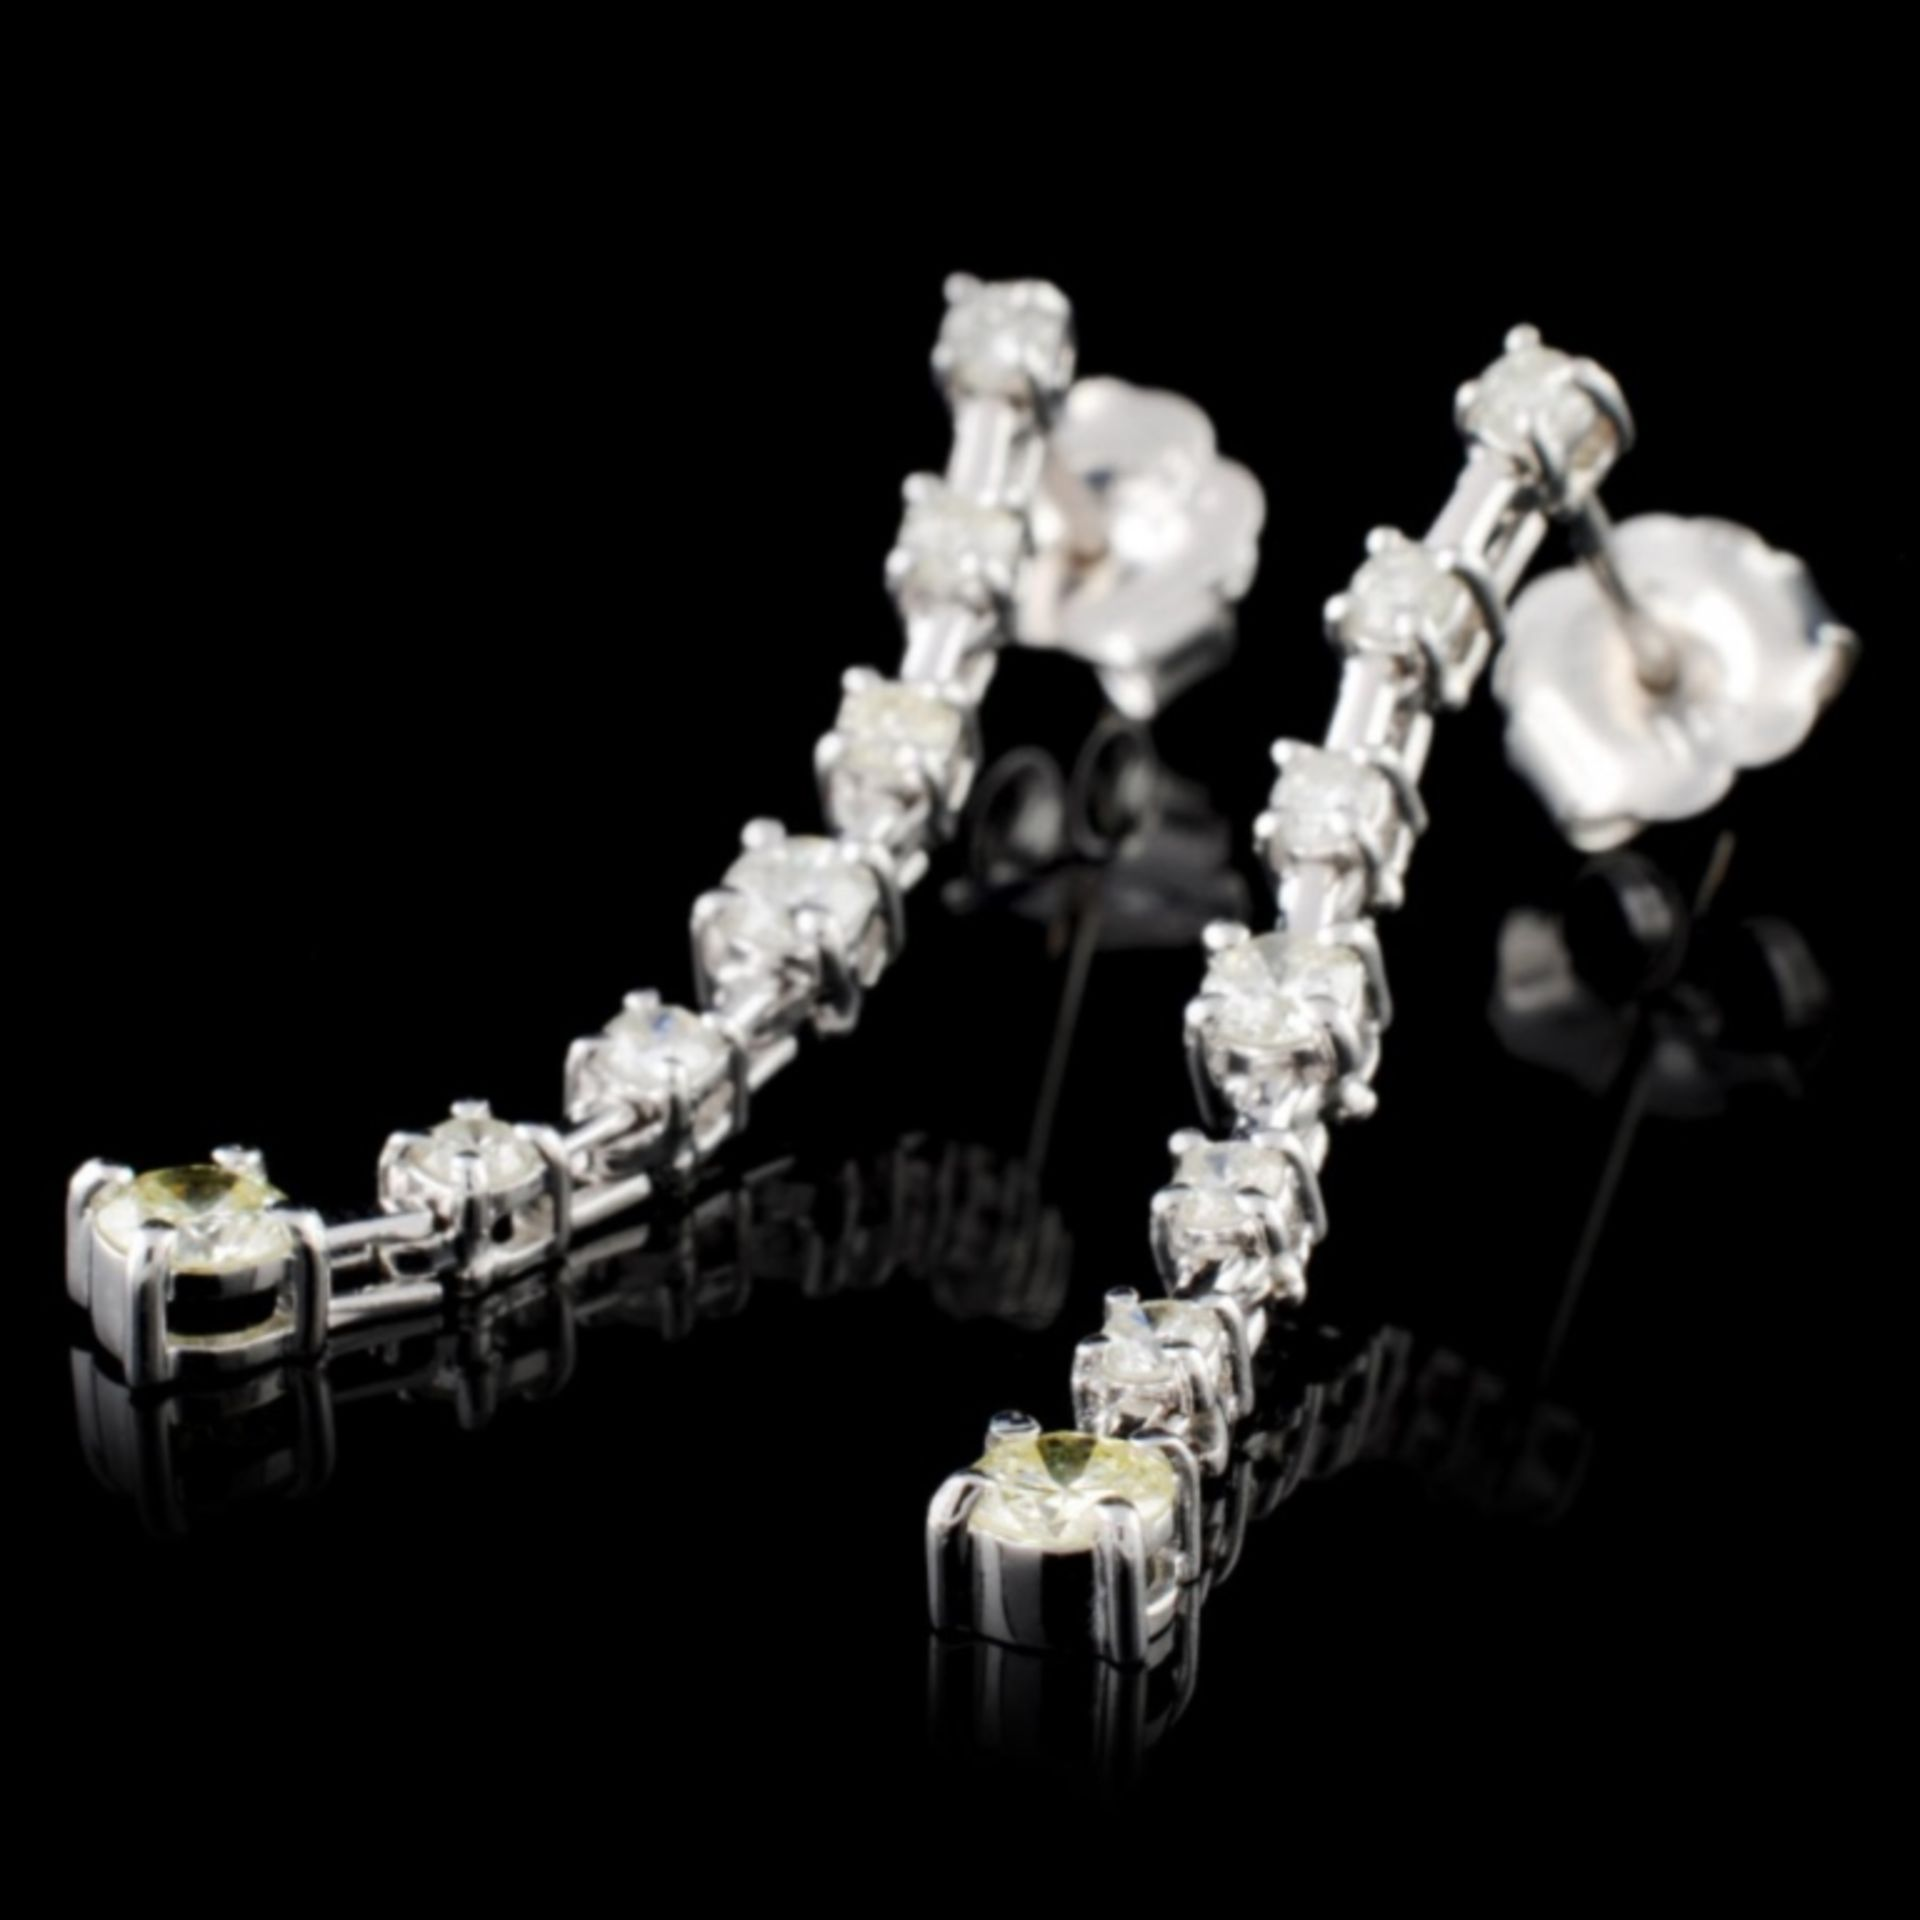 18K White Gold 0.50ctw Diamond Earrings - Image 2 of 3